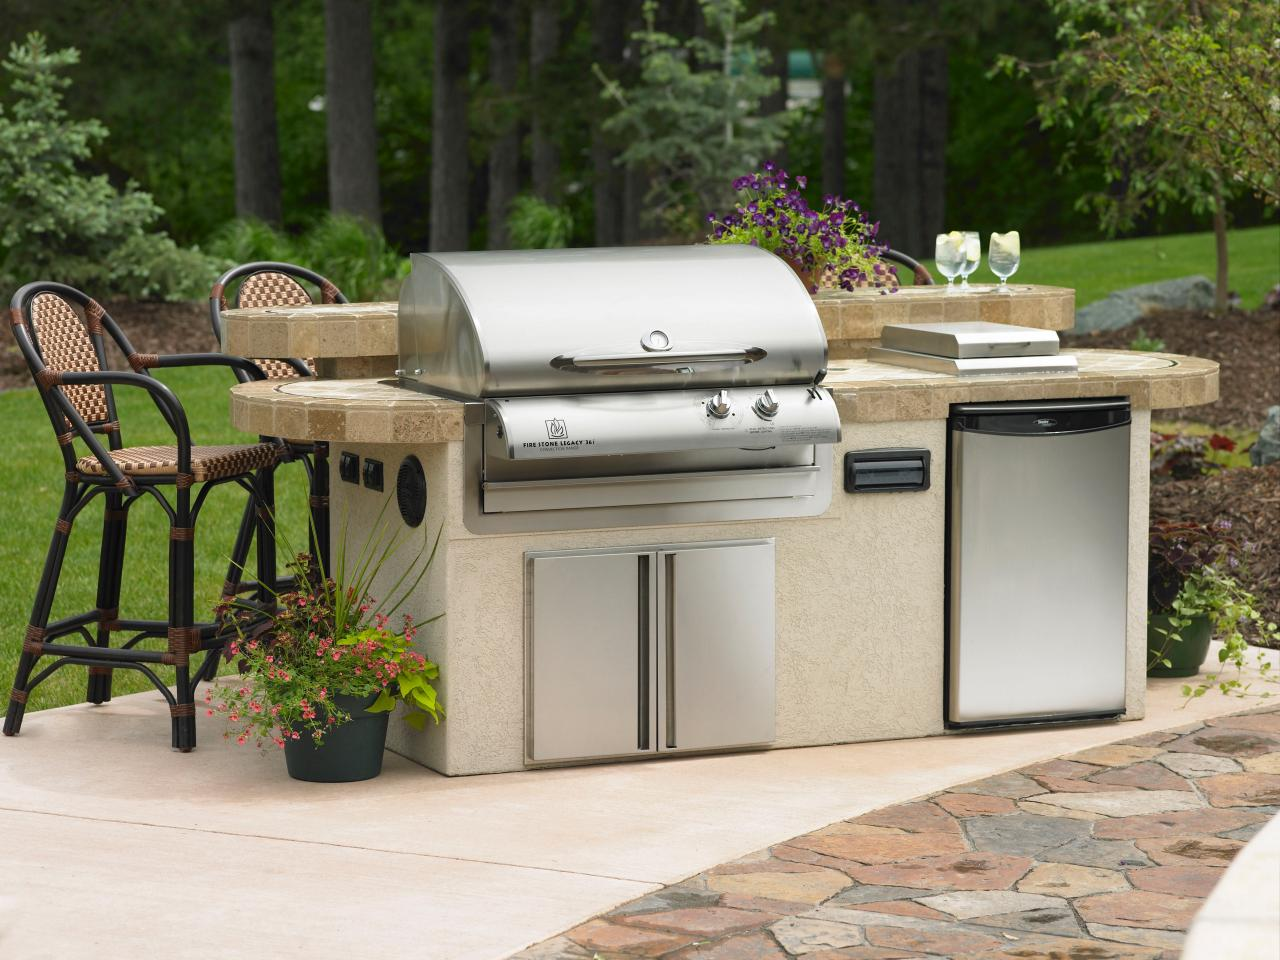 Image of Outdoor Griddle